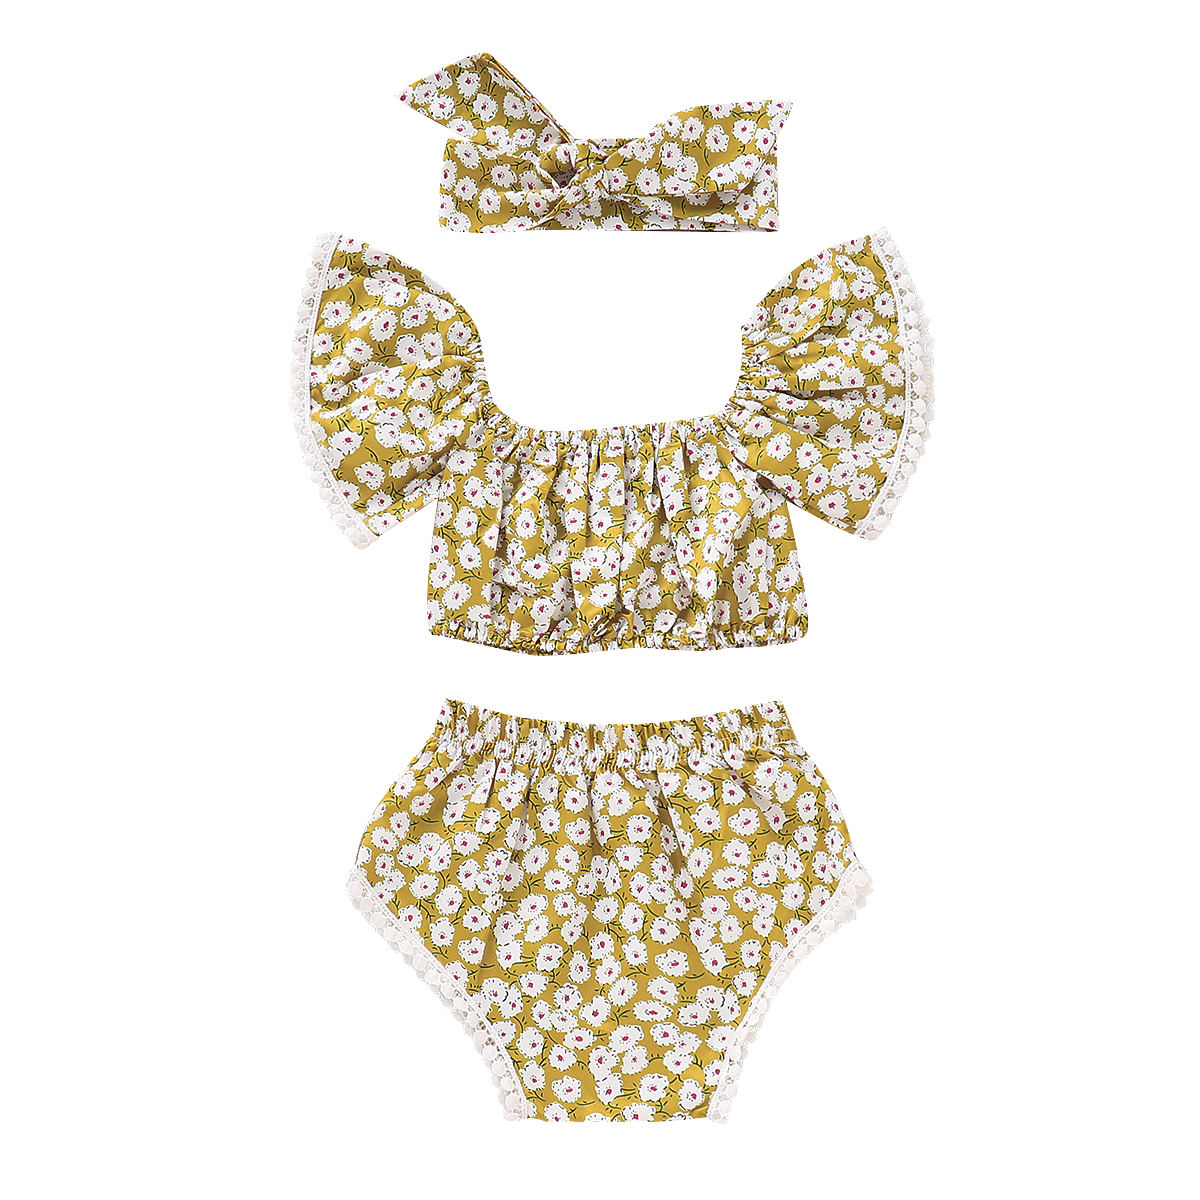 HTB1OI4AayLxK1Rjy0Ffq6zYdVXa0 - 3pcs Newborn Toddler Baby Girls Summer Clothes Tank Tops+Floral Shorts Pants Outfits